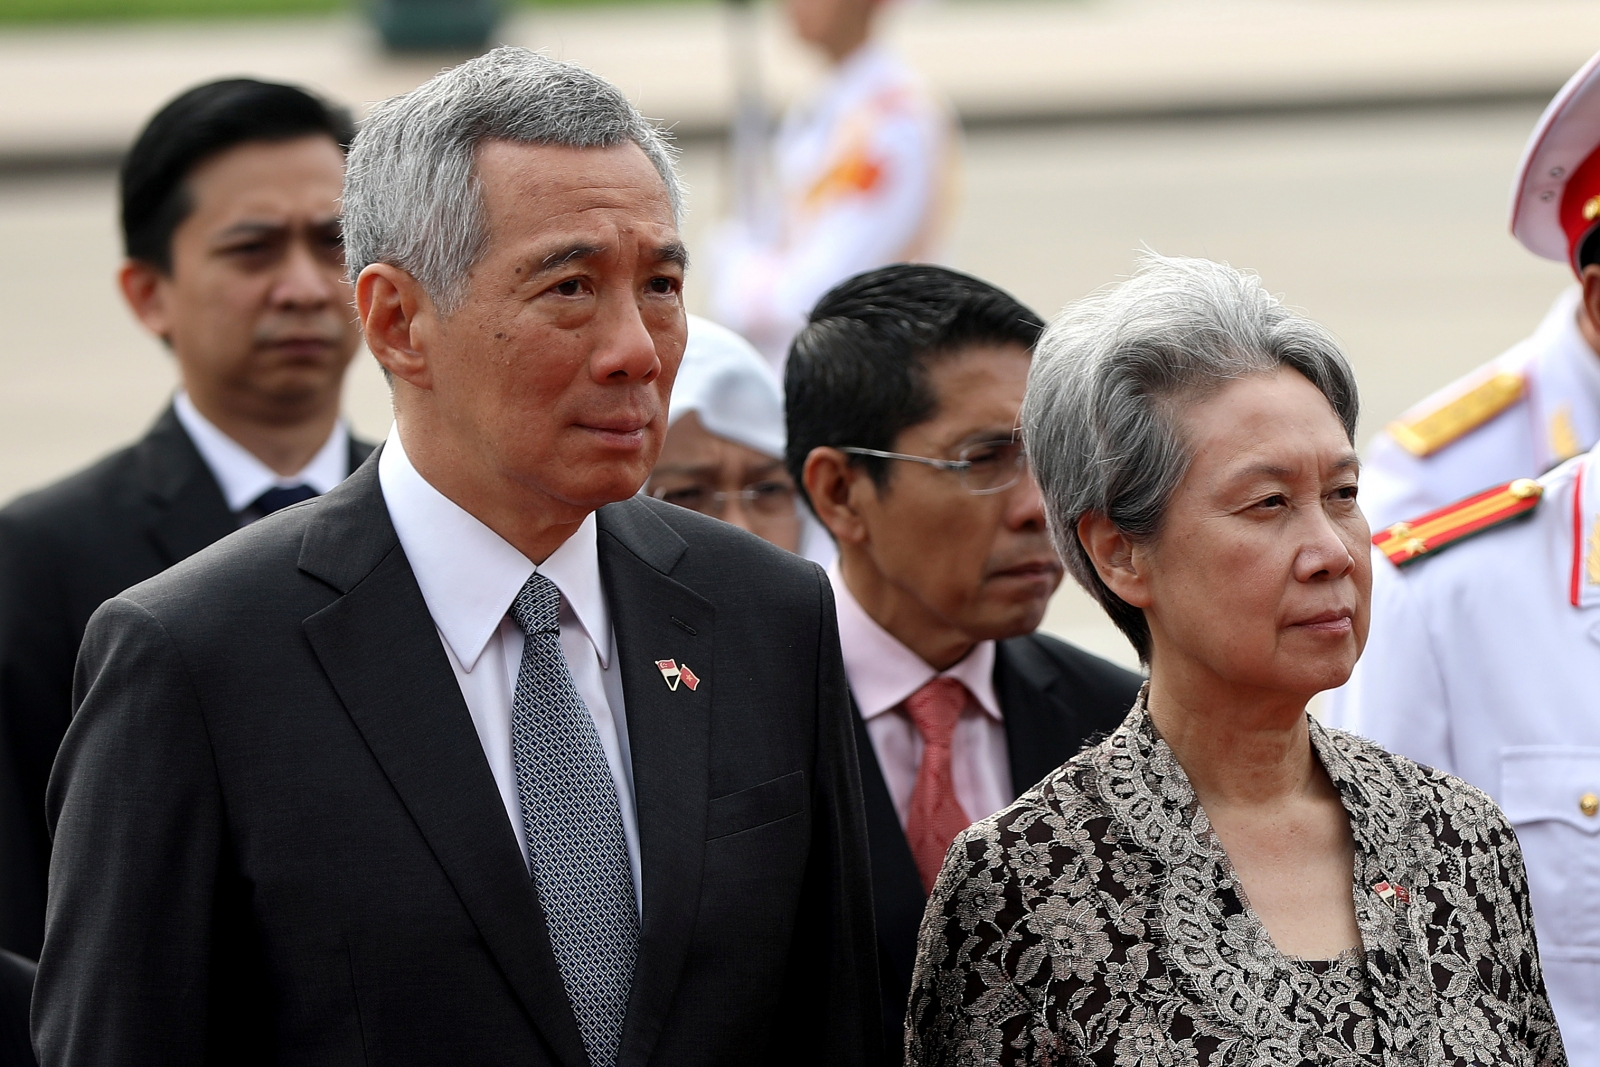 Singapore PM Lee Hsien Loong and wife